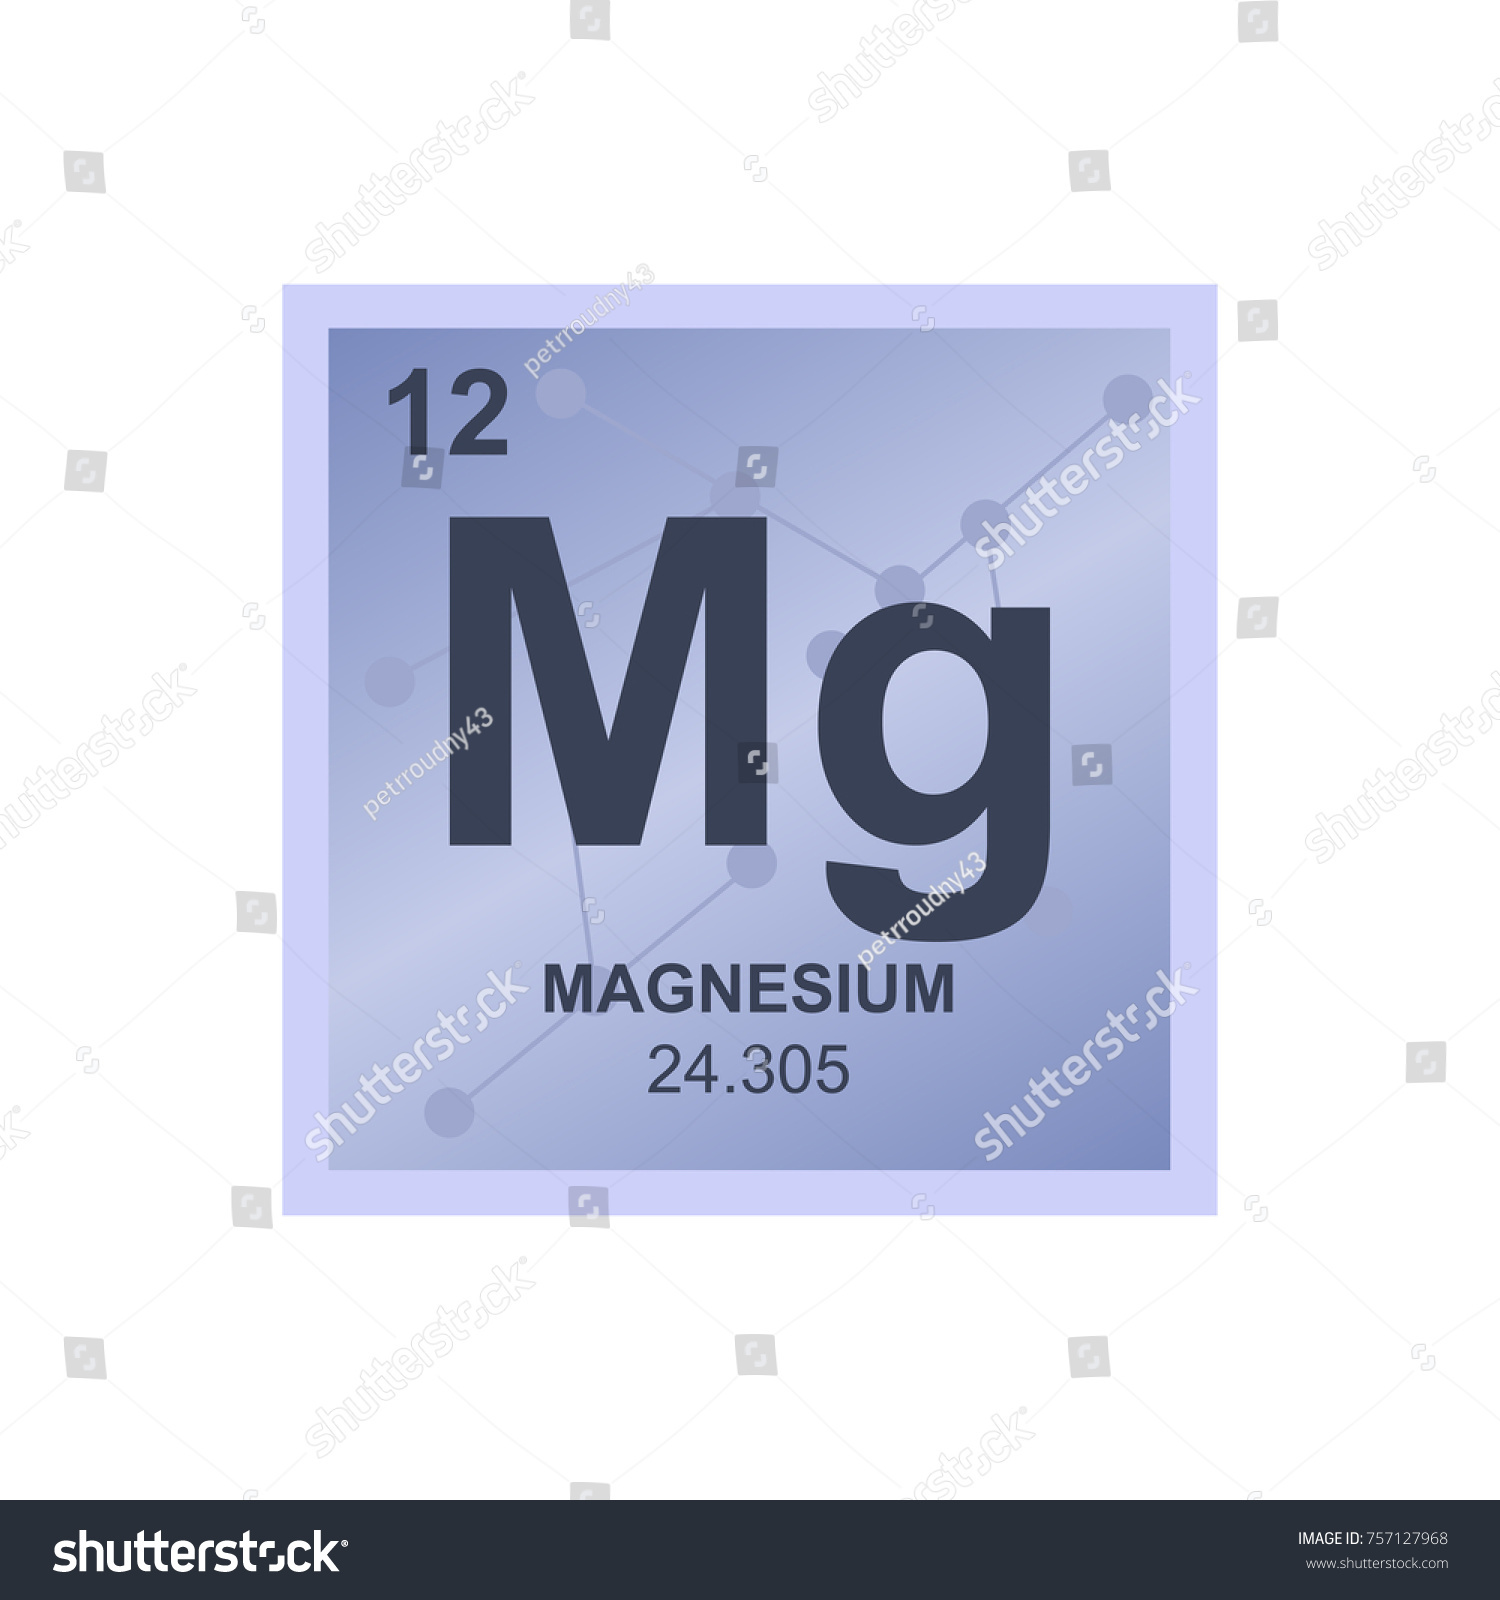 Where is magnesium found on the periodic table choice image magnesium symbol periodic table image collections periodic table magnesium symbol periodic table choice image periodic table gamestrikefo Gallery